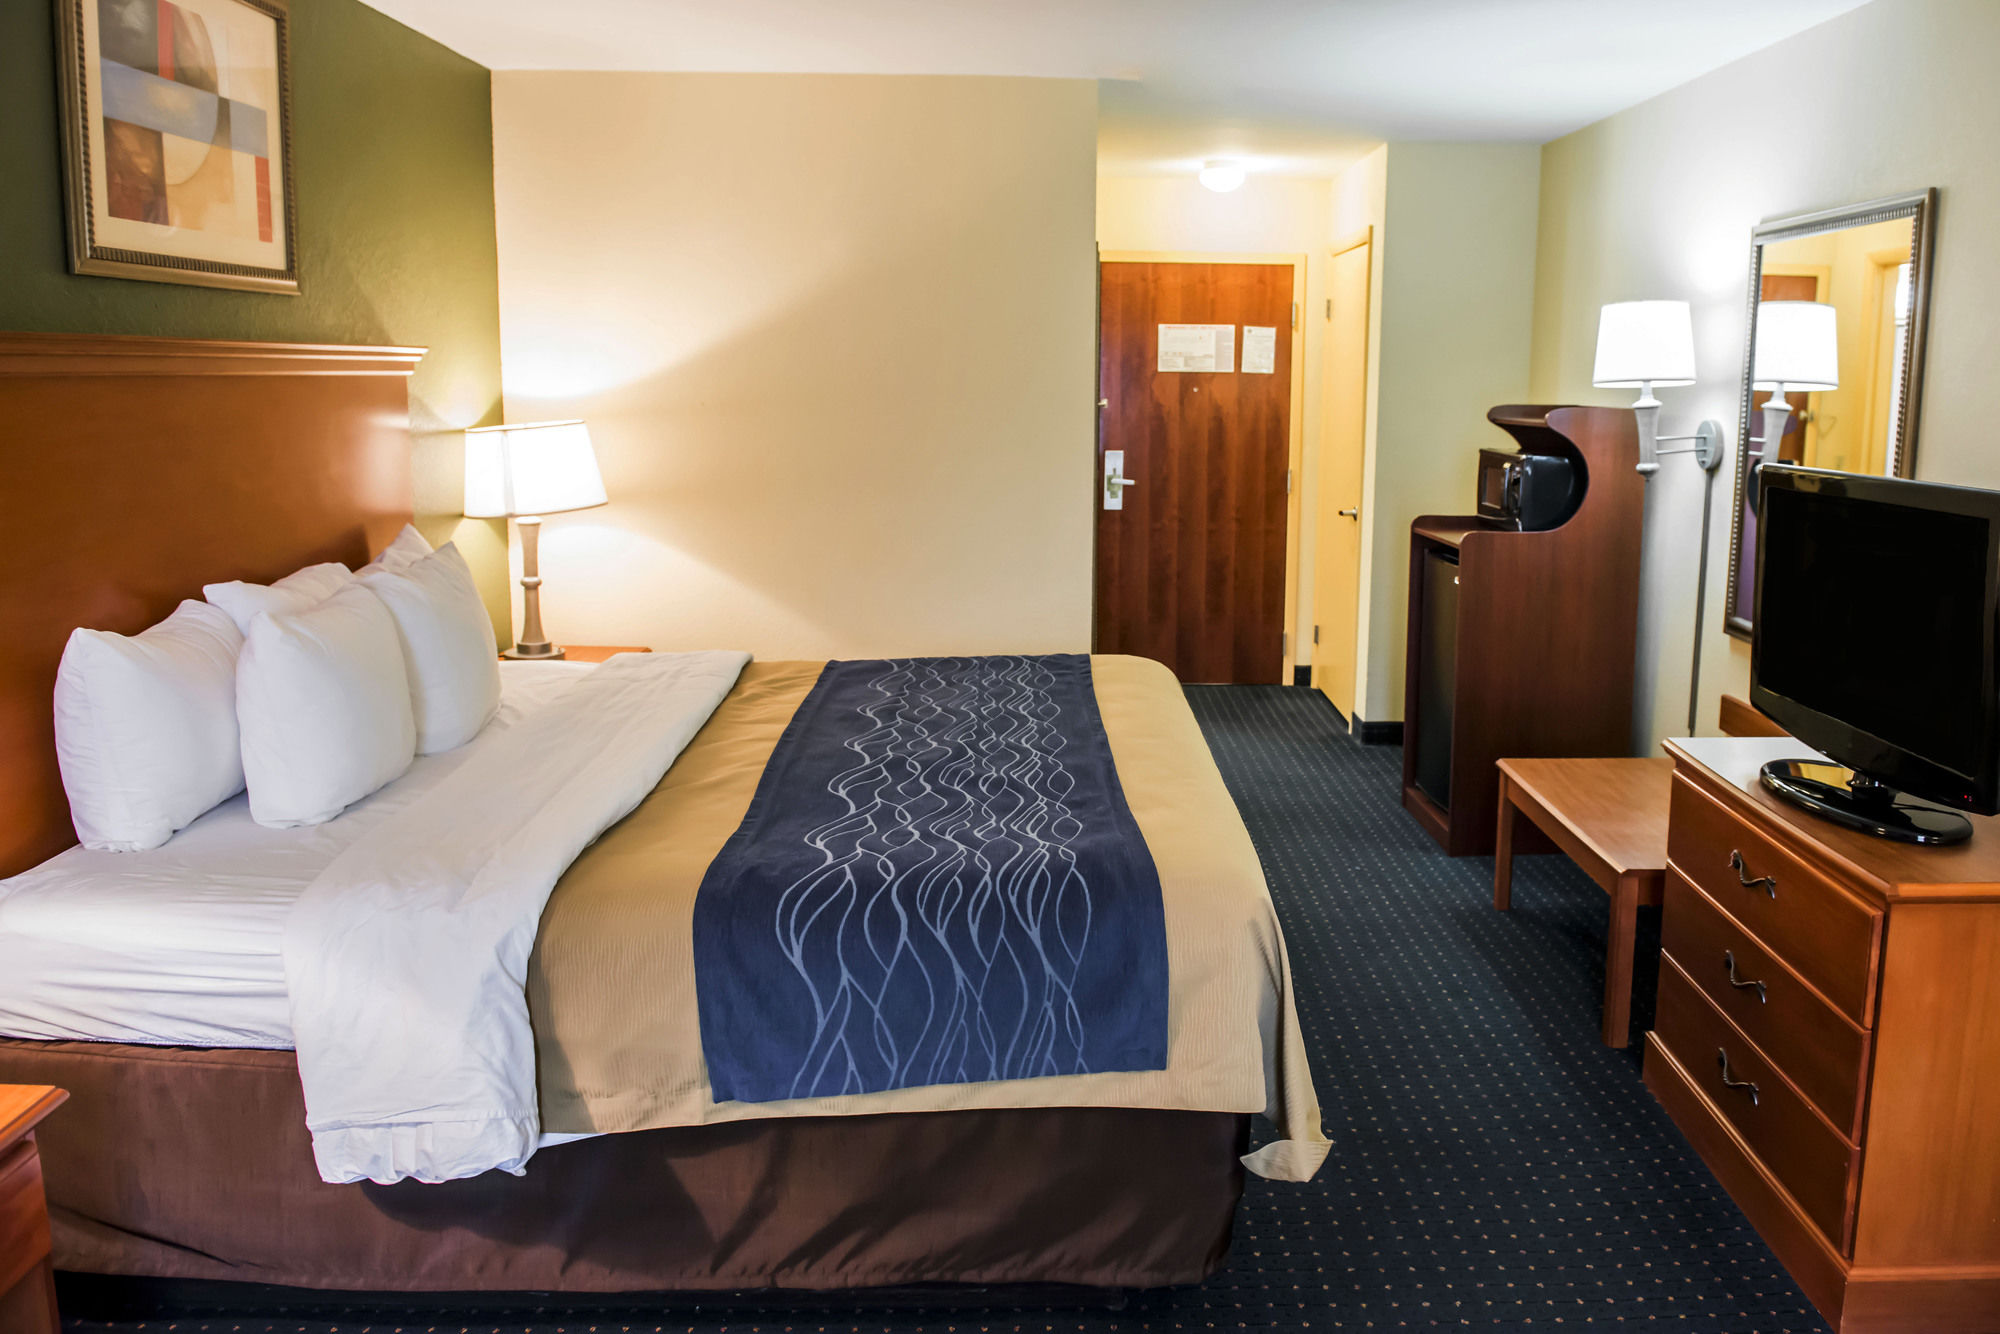 Comfort Inn & Suites in Chipley, FL